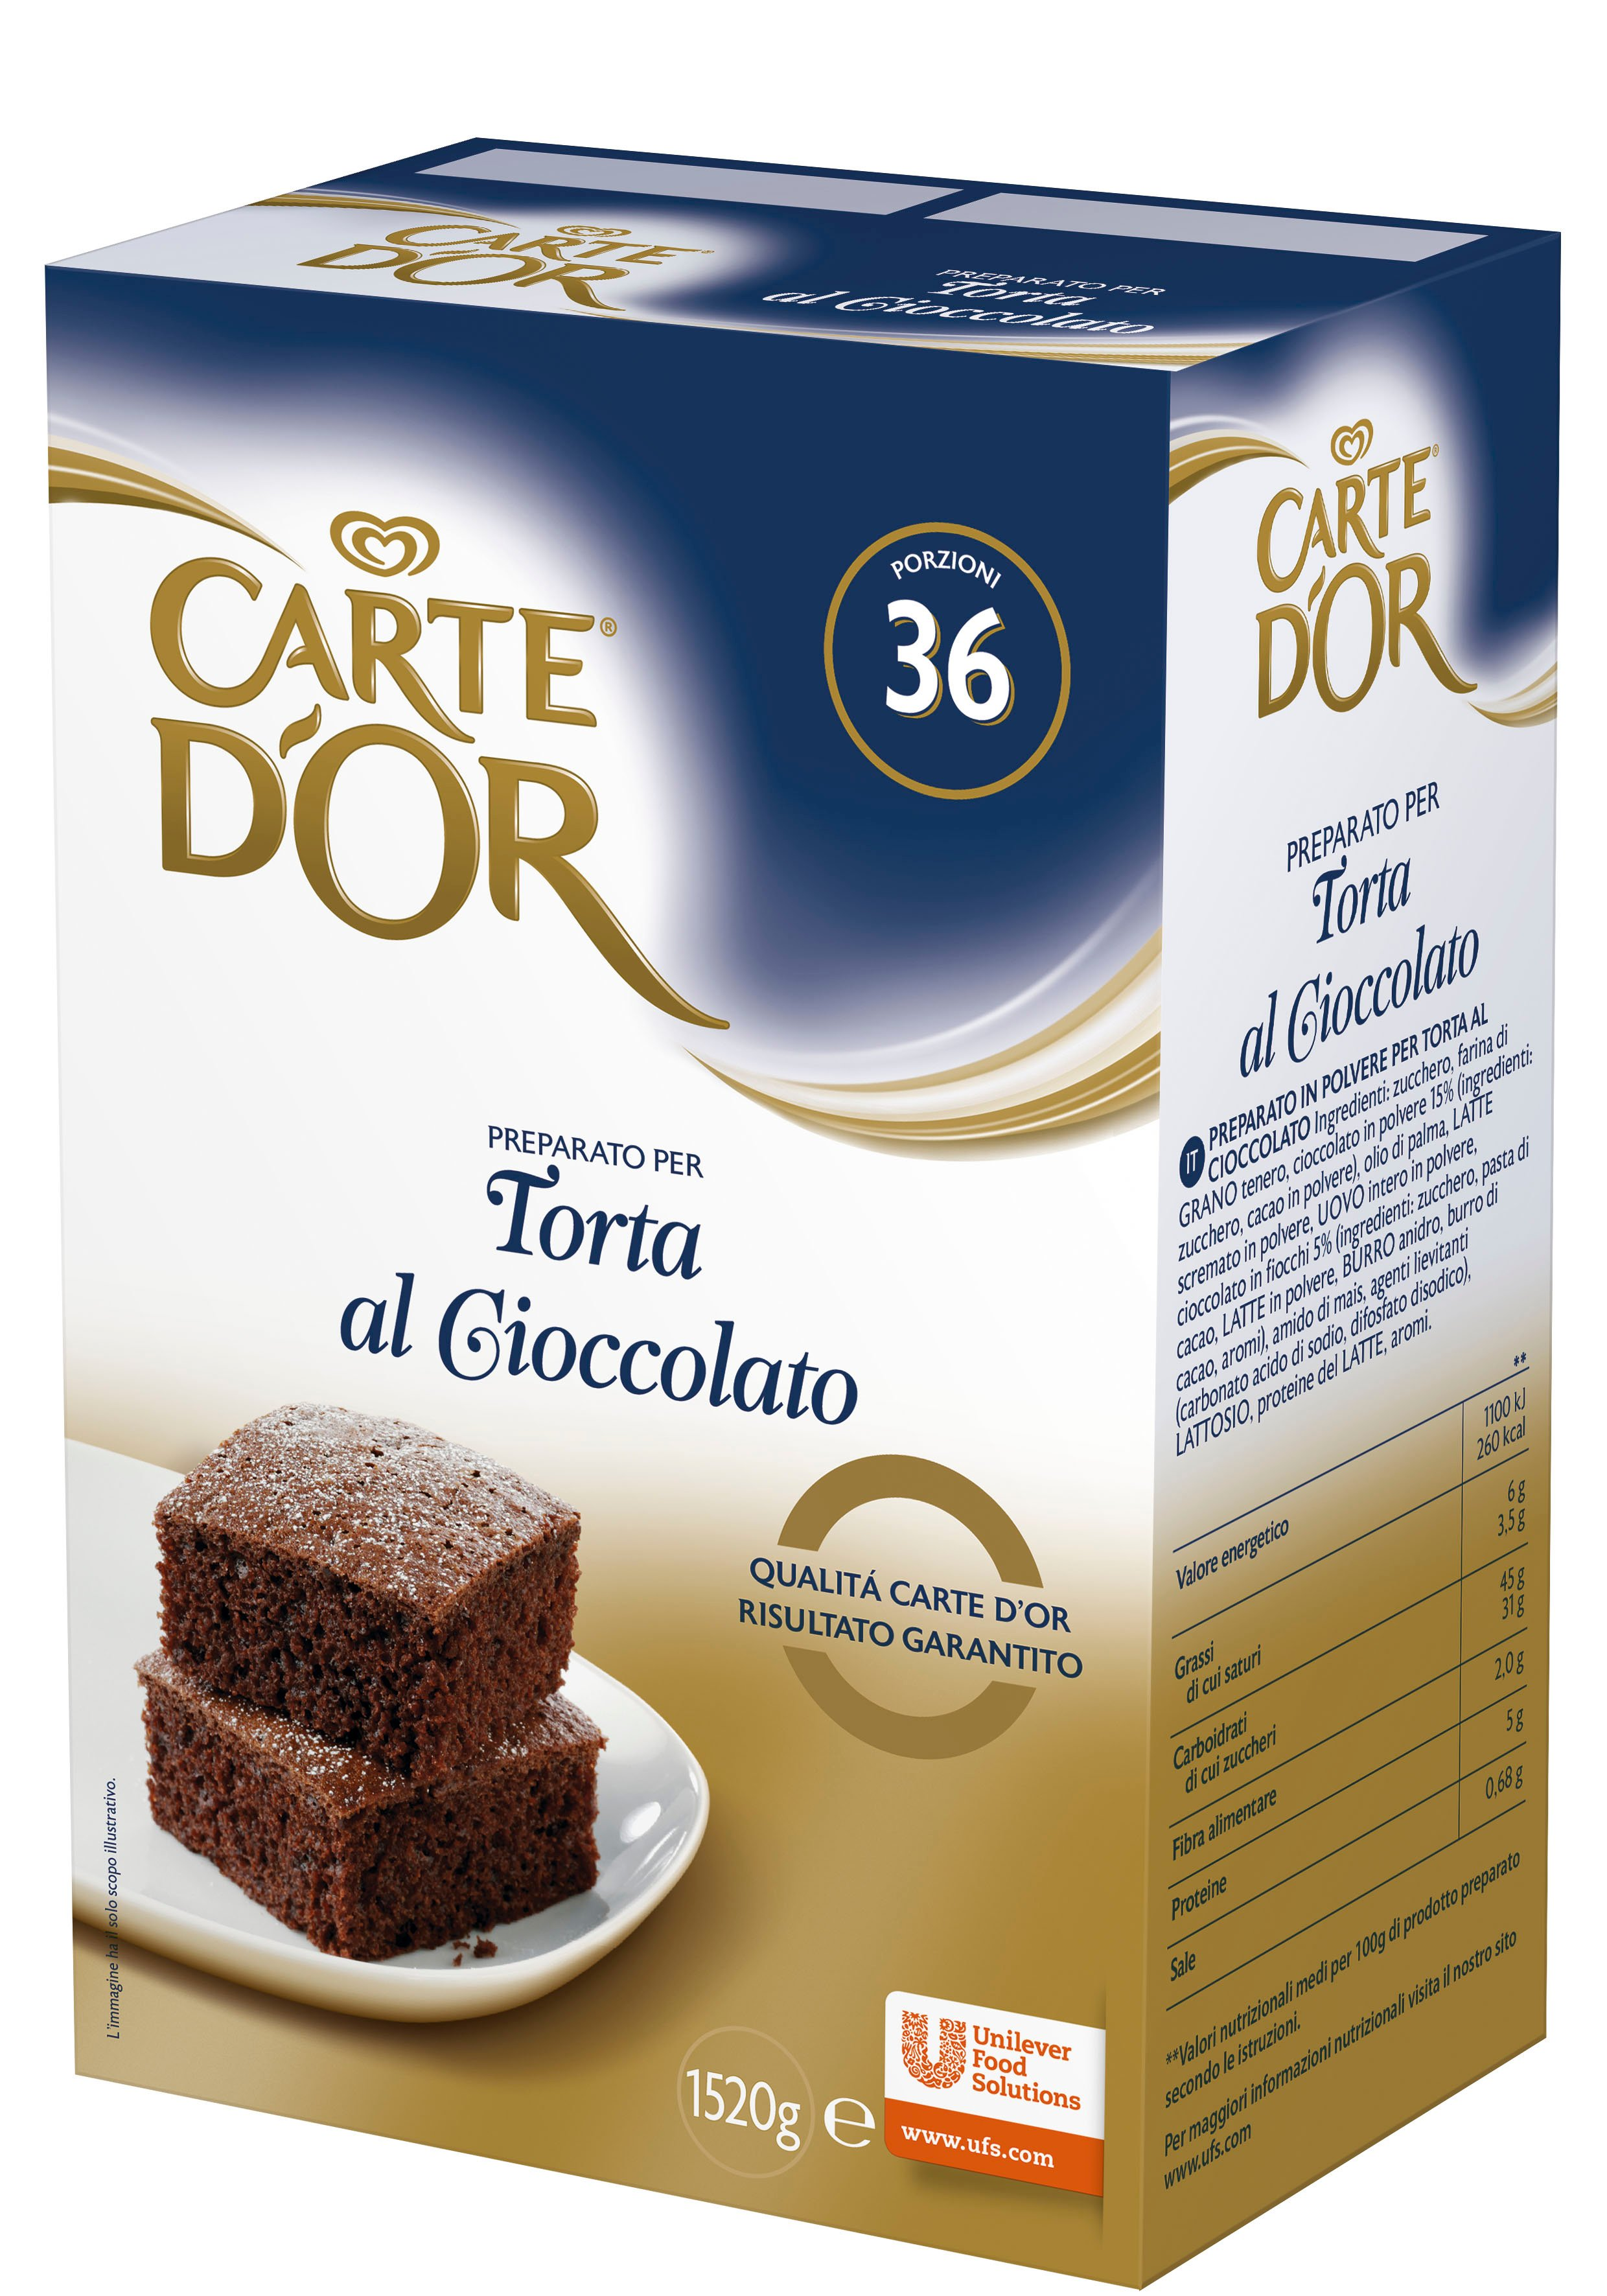 Carte d'Or preparato per Torta al Cioccolato 1,52 Kg -